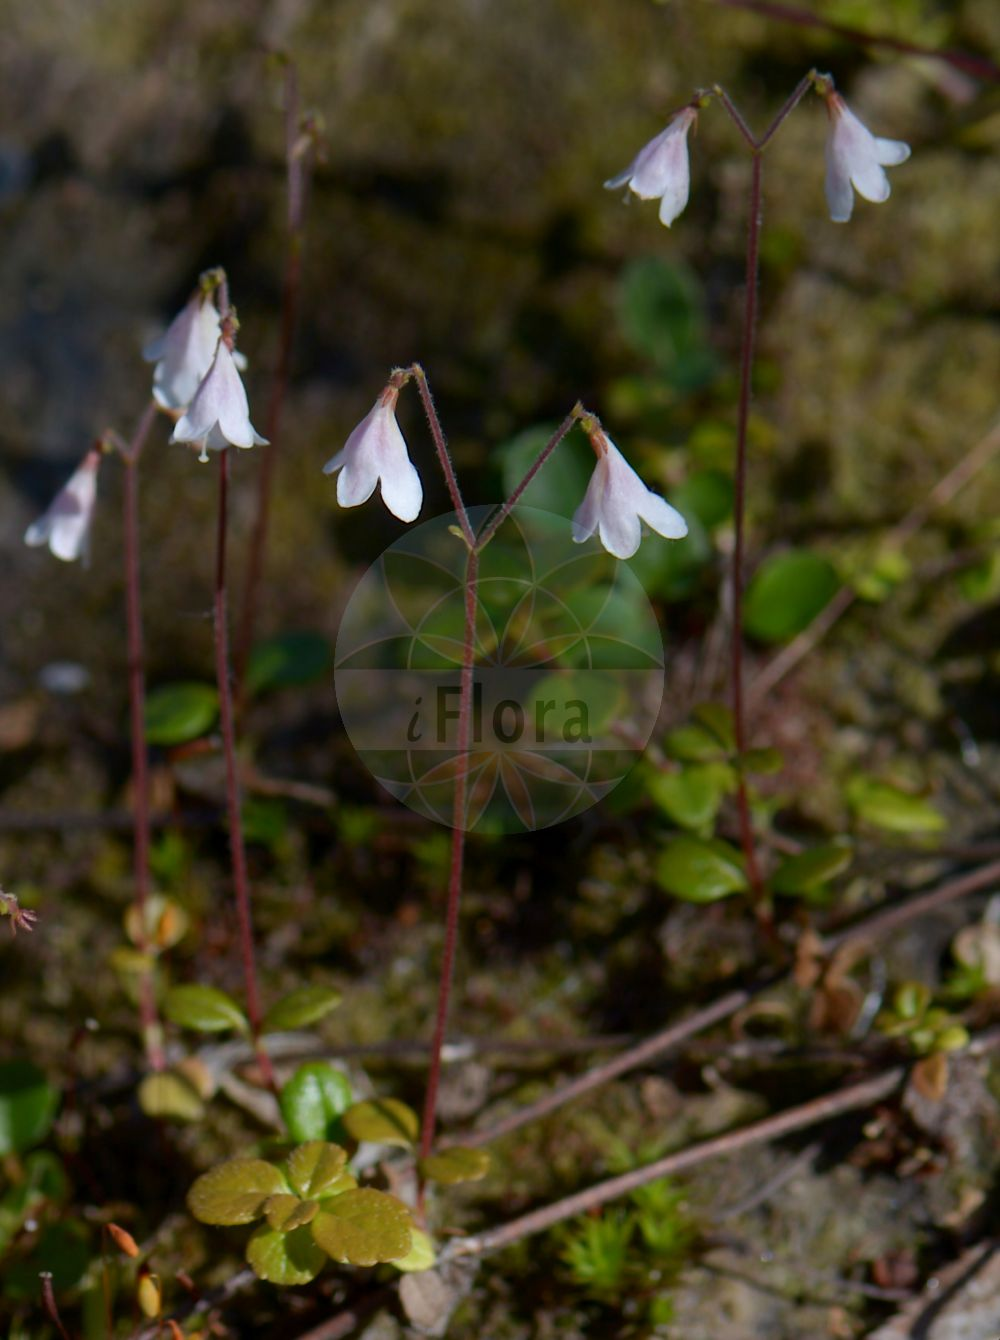 Foto von Linnaea borealis (Moosgloeckchen - Twinflower). Das Bild zeigt Blatt und Bluete. Das Foto wurde in Goeteborg, Schweden aufgenommen. ---- Photo of Linnaea borealis (Moosgloeckchen - Twinflower).The image is showing leaf and flower.The picture was taken in Gothenburg, Sweden.(Linnaea borealis,Moosgloeckchen,Twinflower,Erdgloeckchen,Linnaea,Moosgloeckchen,Twinflower,Caprifoliaceae,Geissblattgewaechse,Honeysuckle family,Blatt,Bluete,leaf,flower)